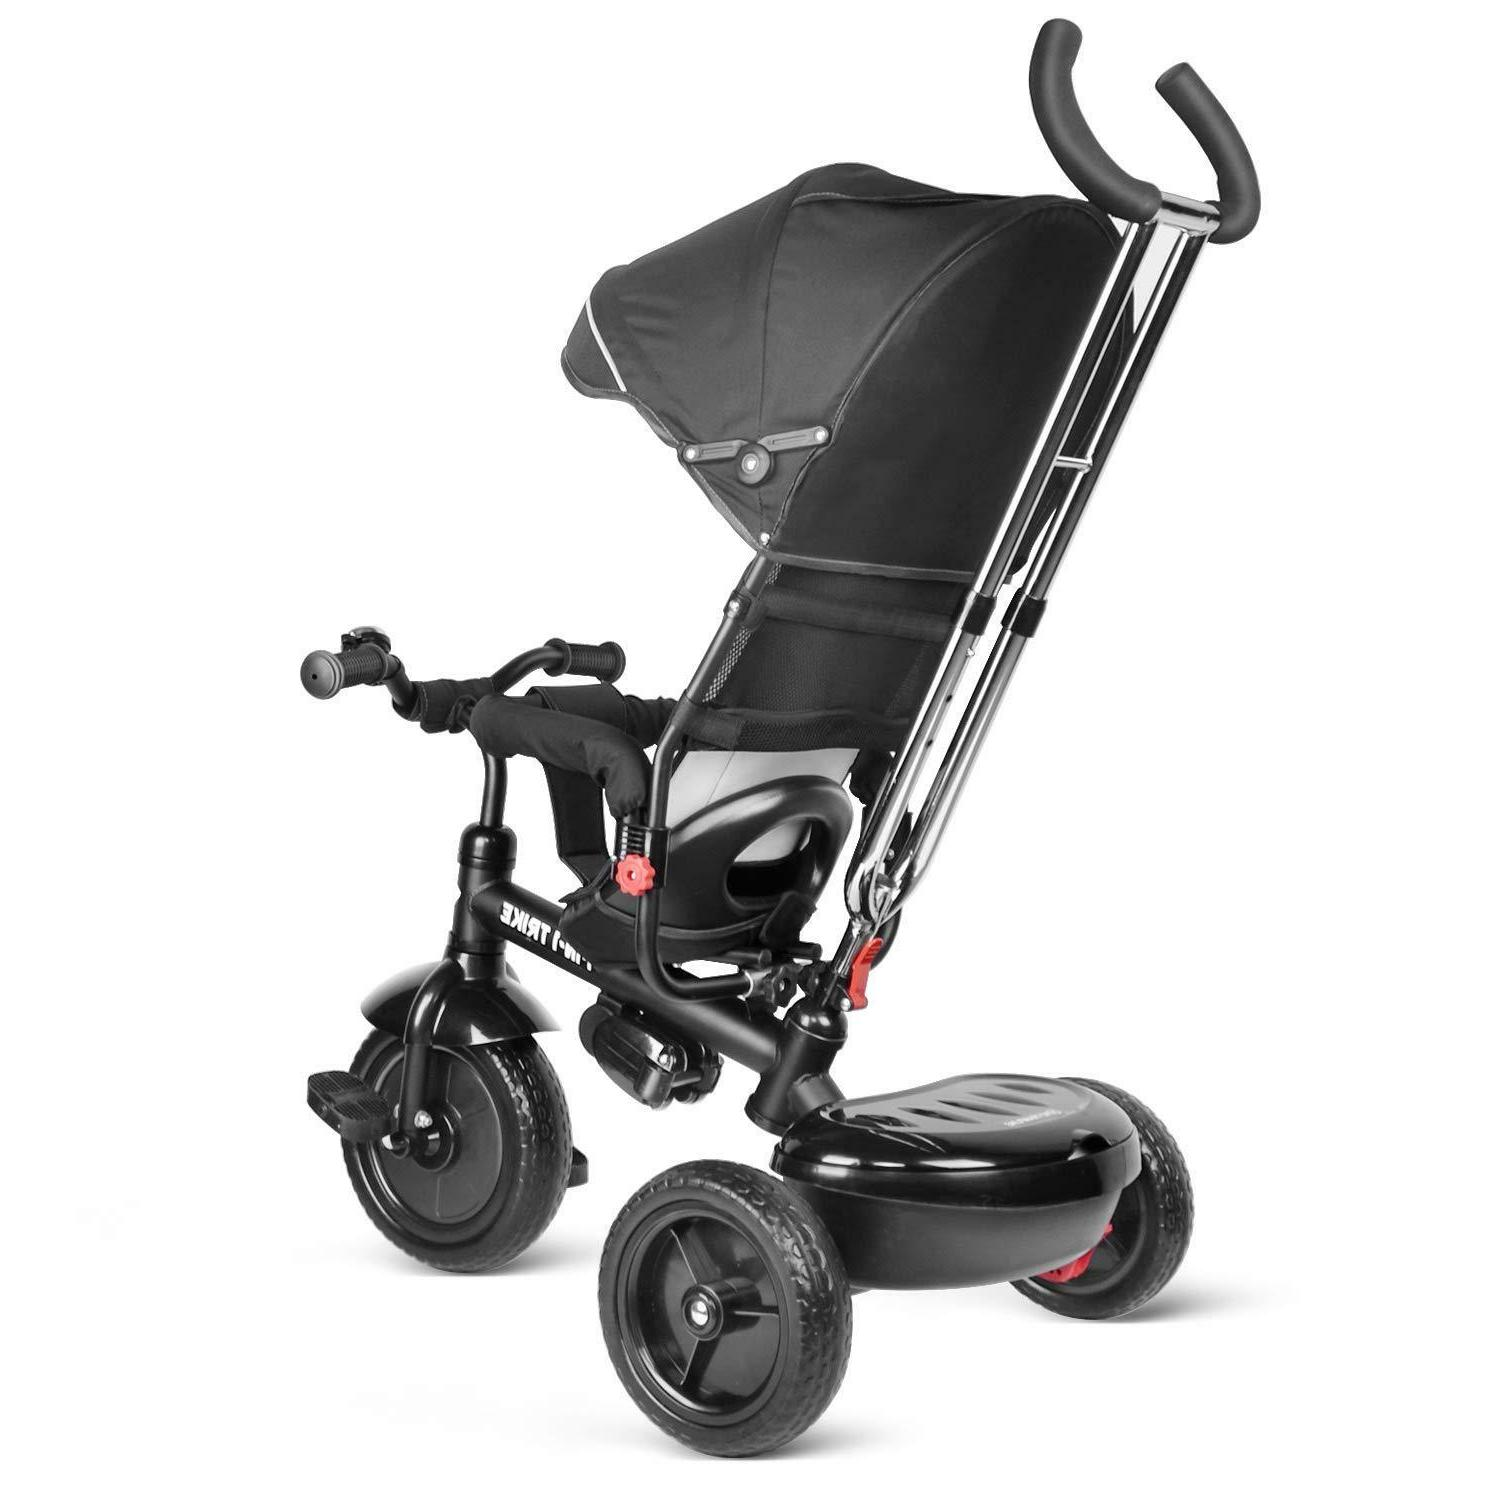 besrey Tricycle Baby pedals with Detachable